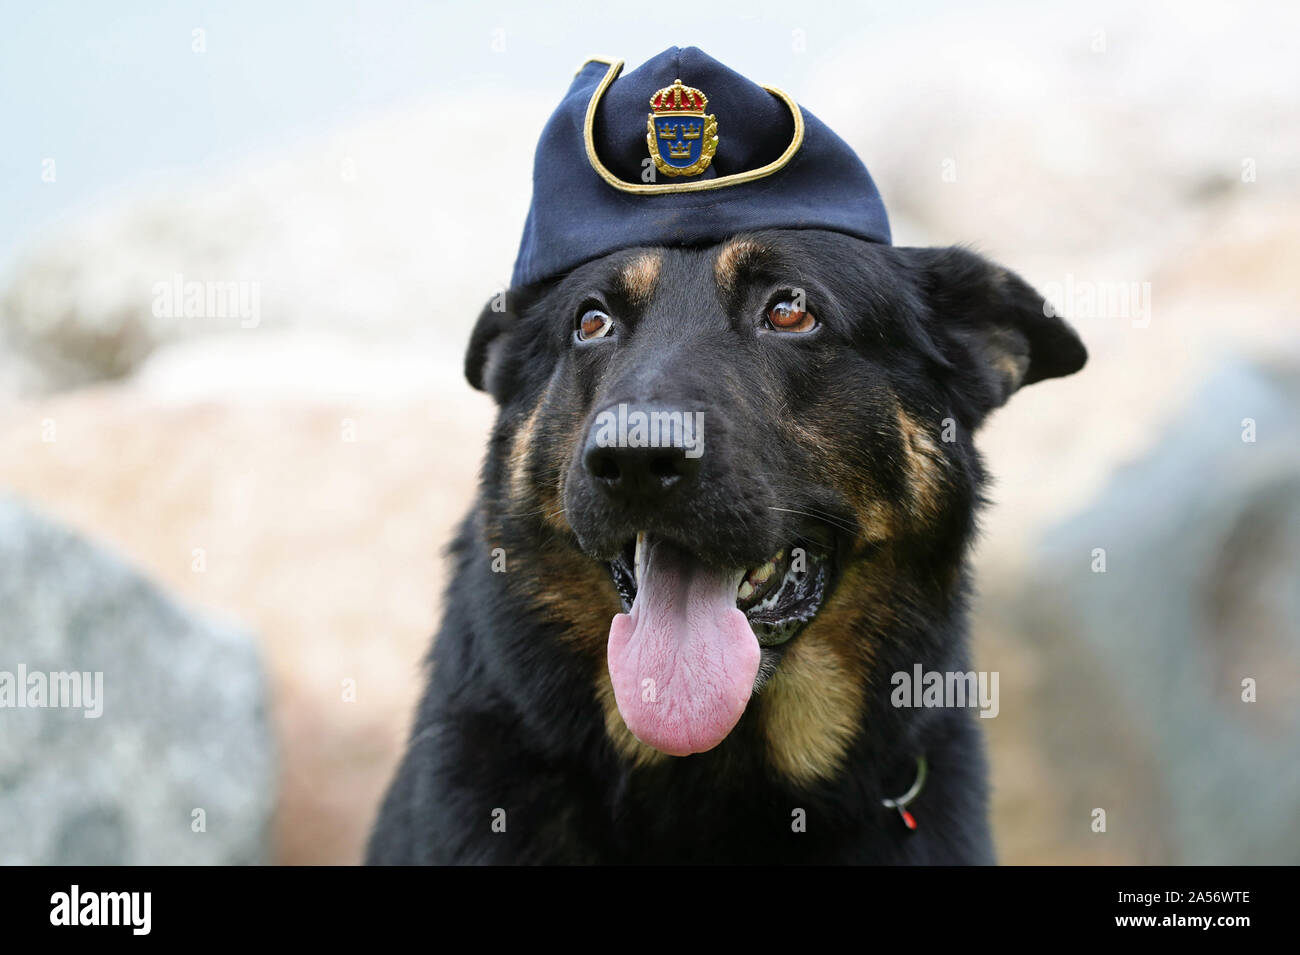 "VADSTENA 20190905Schäfern Tass, 6-year-old police dog from Lidköping, during Swedish Championships in Police-dog., which this year is held in Vadstena. A police dog, known in some English-speaking countries as a ""K-9"" or ""K9"" (a homophone of ""canine""), is a dog that is specifically trained to assist police and other law-enforcement personnel. Photo Jeppe Gustafsson Stock Photo"